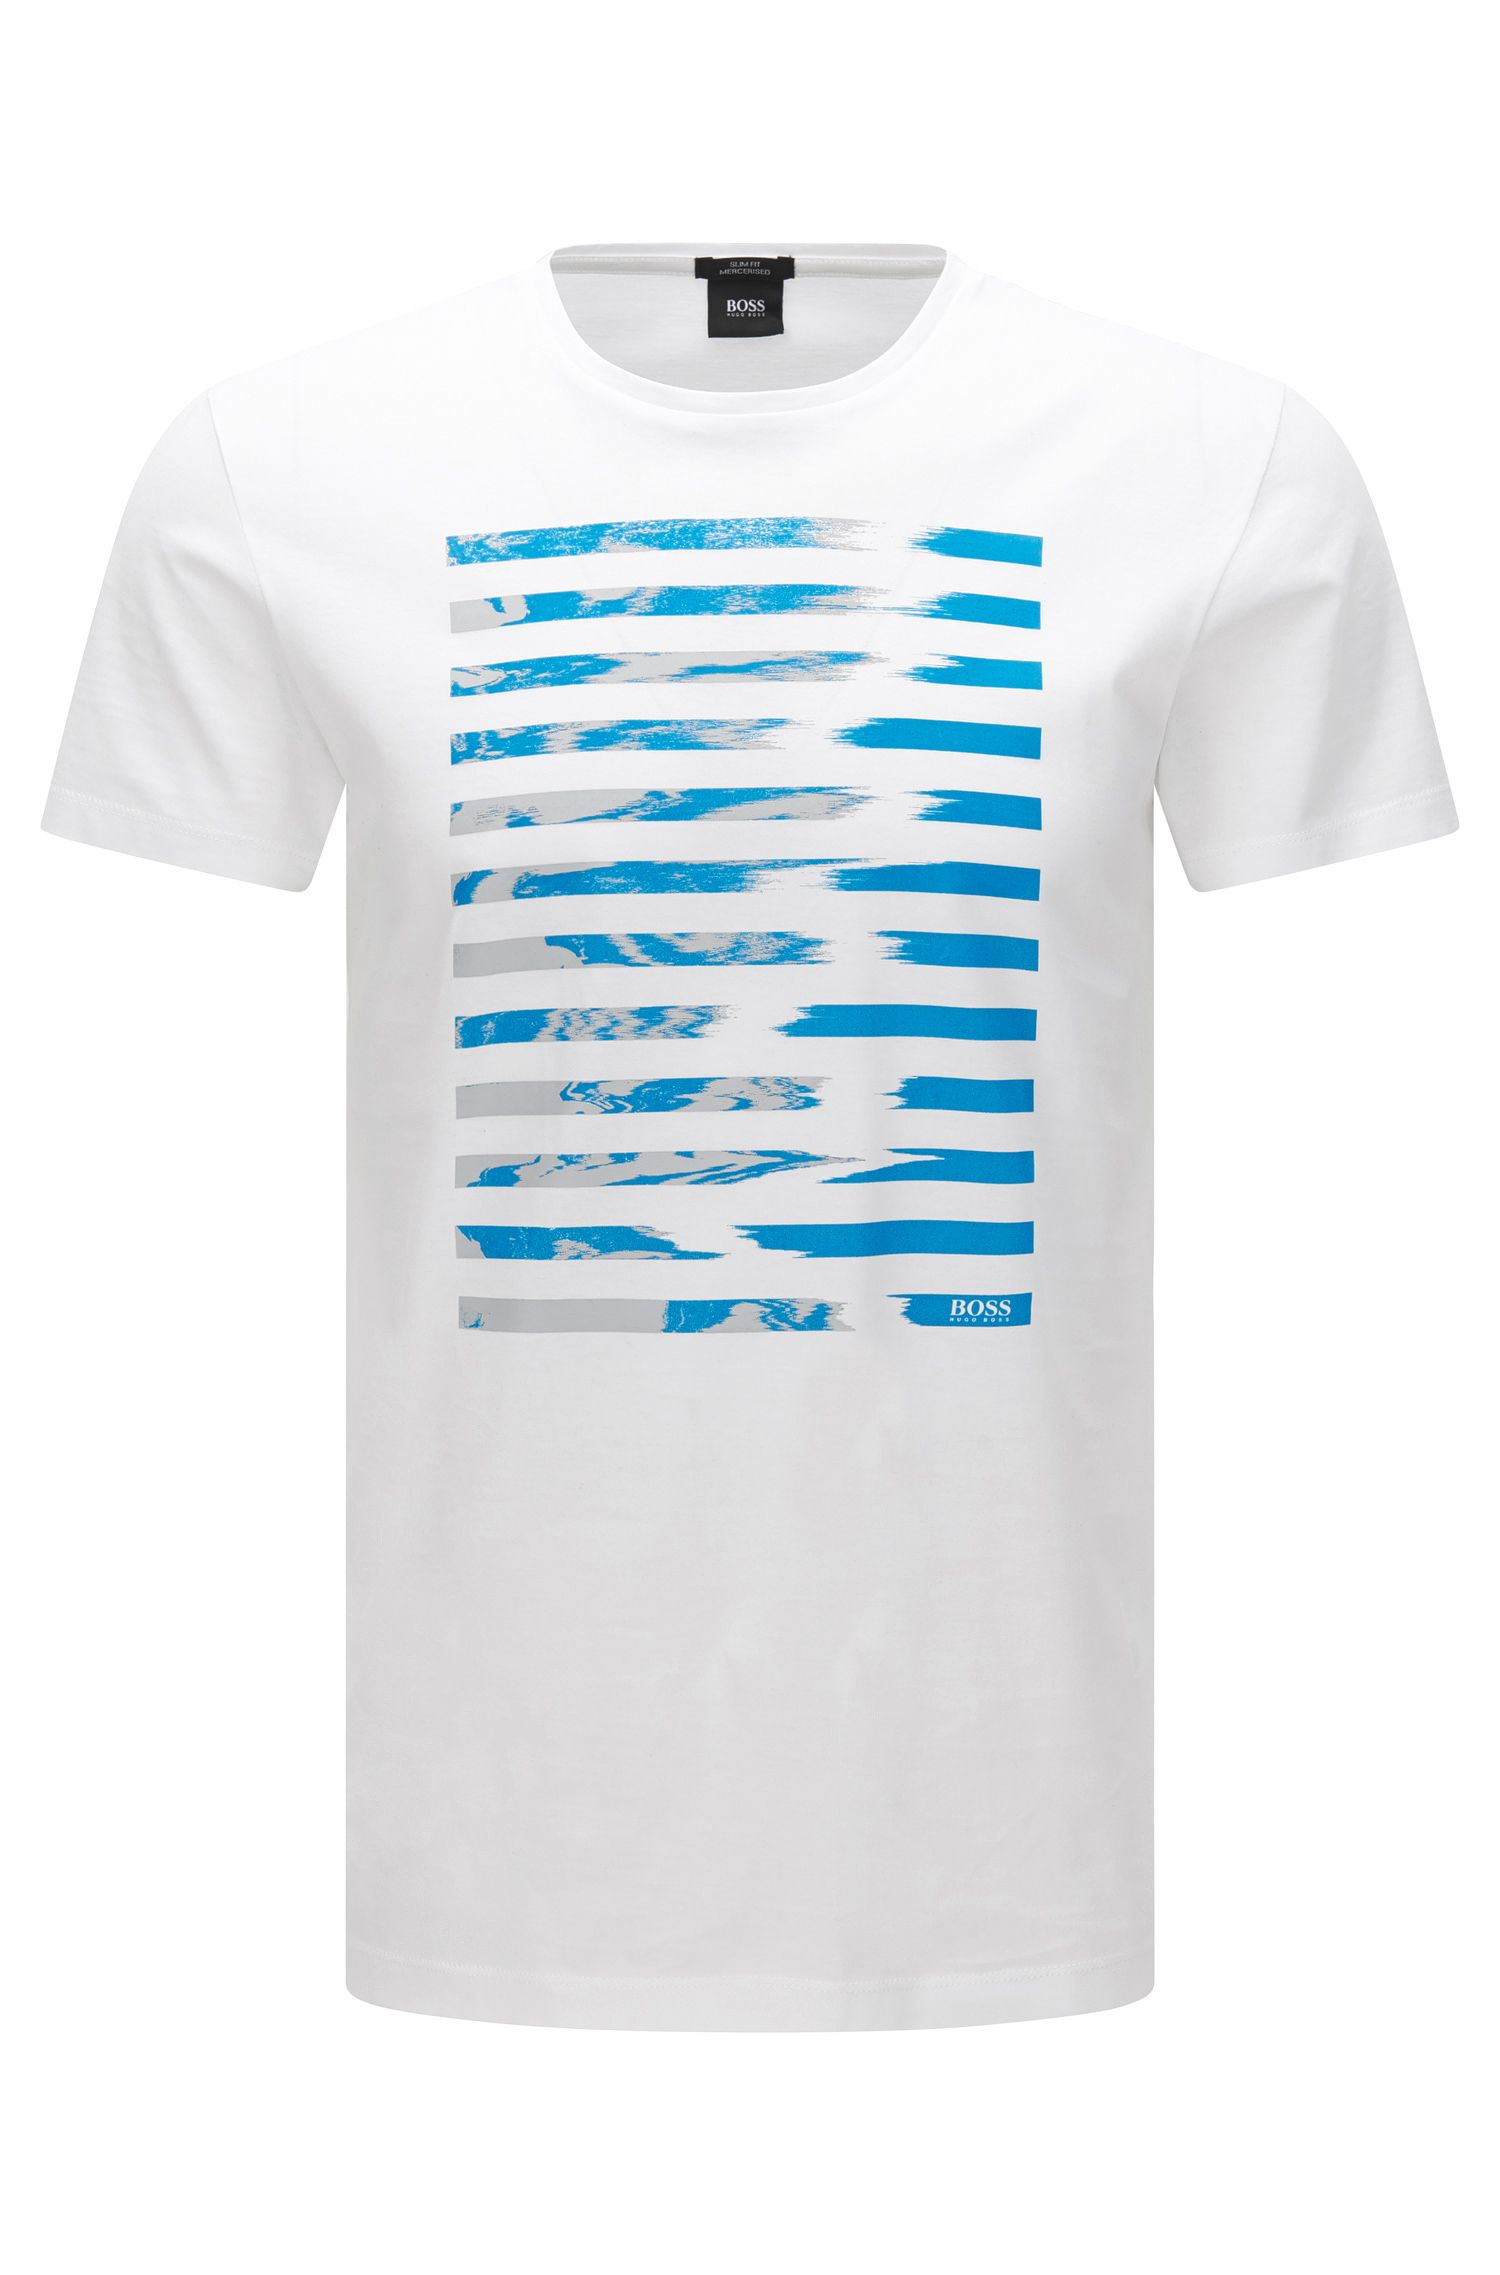 T-shirt slim fit con stampa grafica in cotone mercerizzato